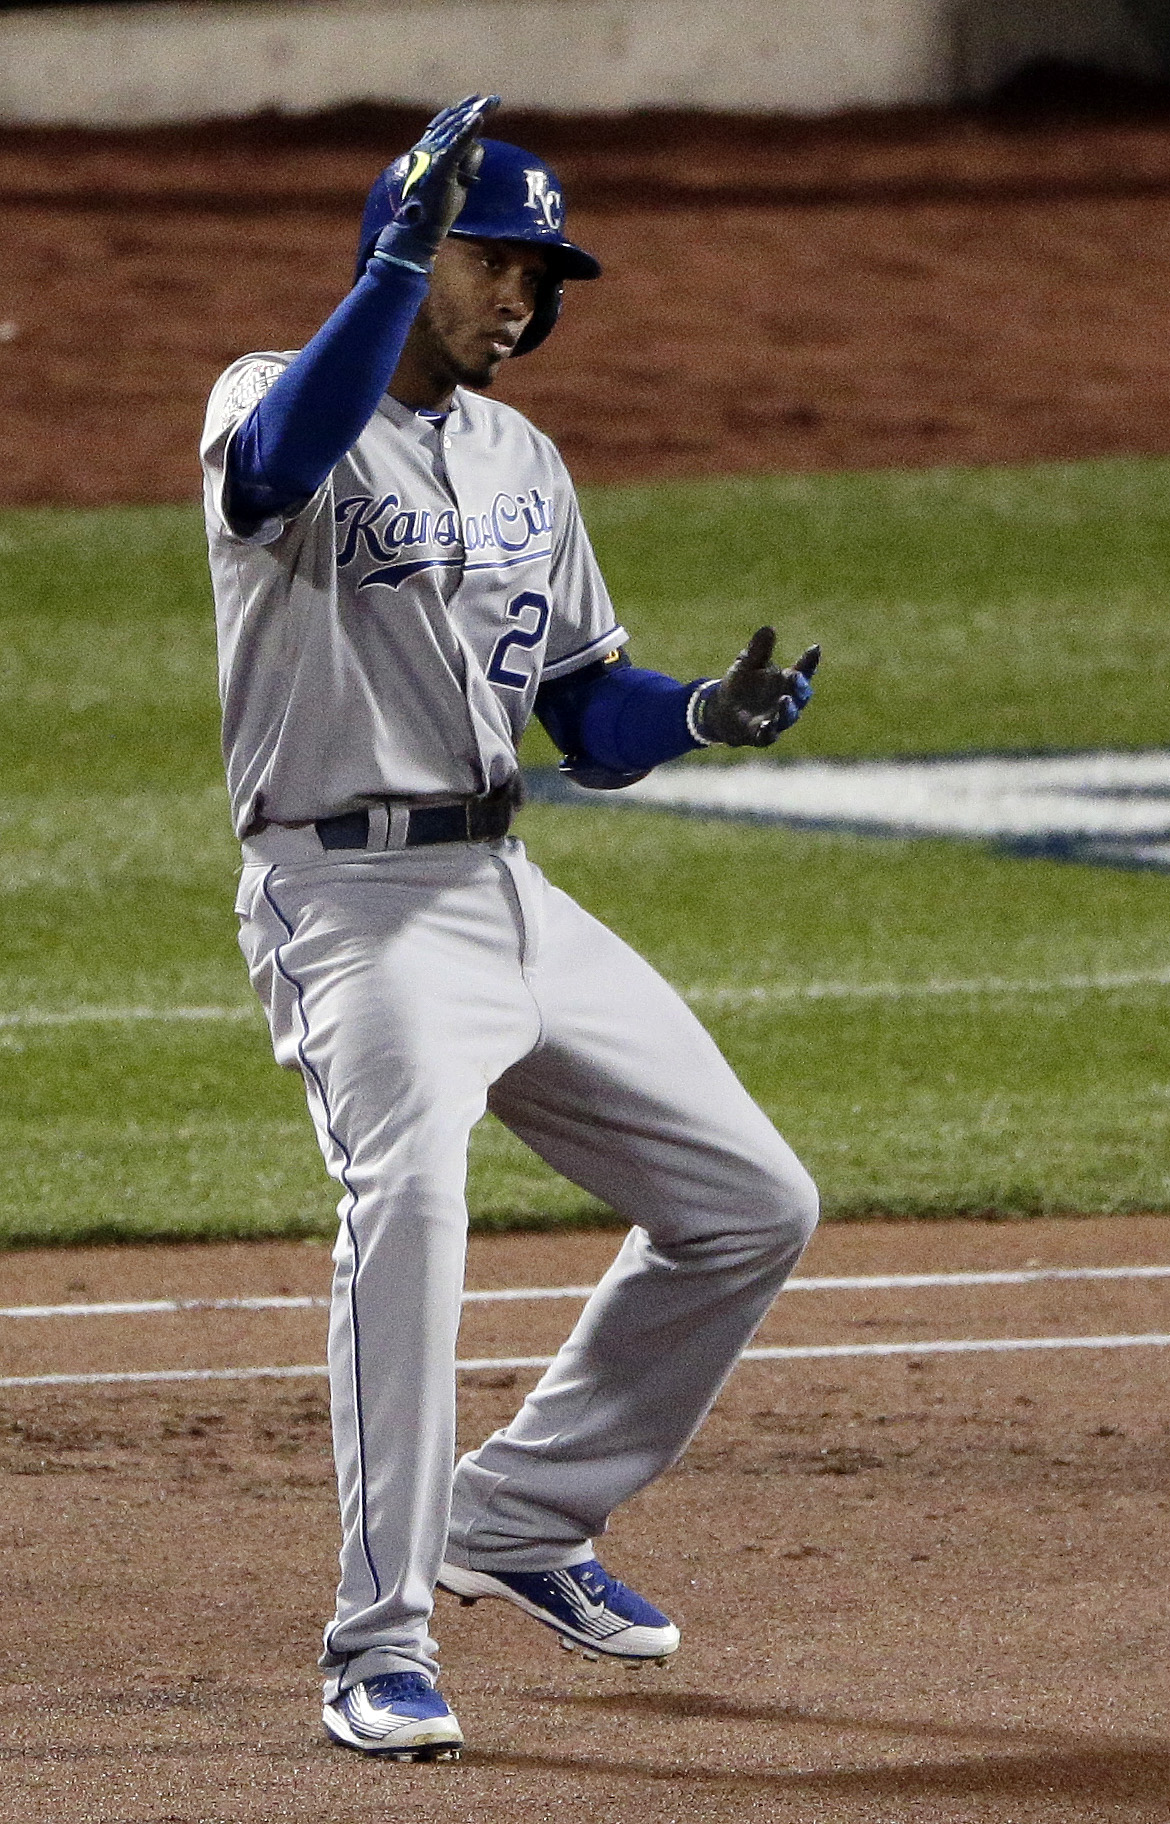 Kansas City Royals' Alcides Escobar celebrates his single against the New York Mets during the first inning of Game 4 of the Major League Baseball World Series Saturday, Oct. 31, 2015, in New York. (AP Photo/Charlie Riedel)